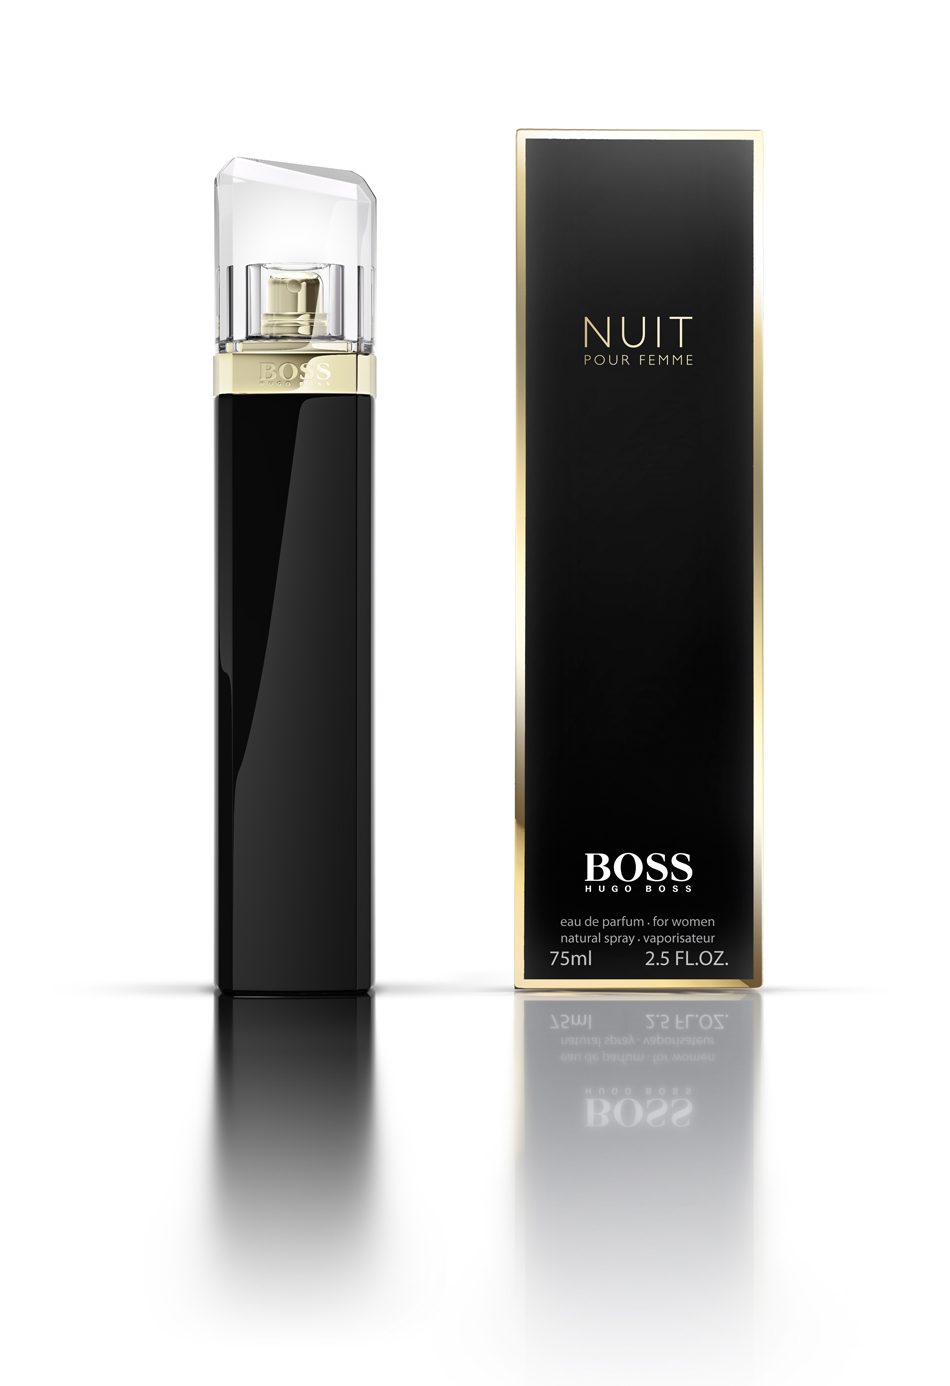 BOSS Nuit Pour Femme is available nationwide.